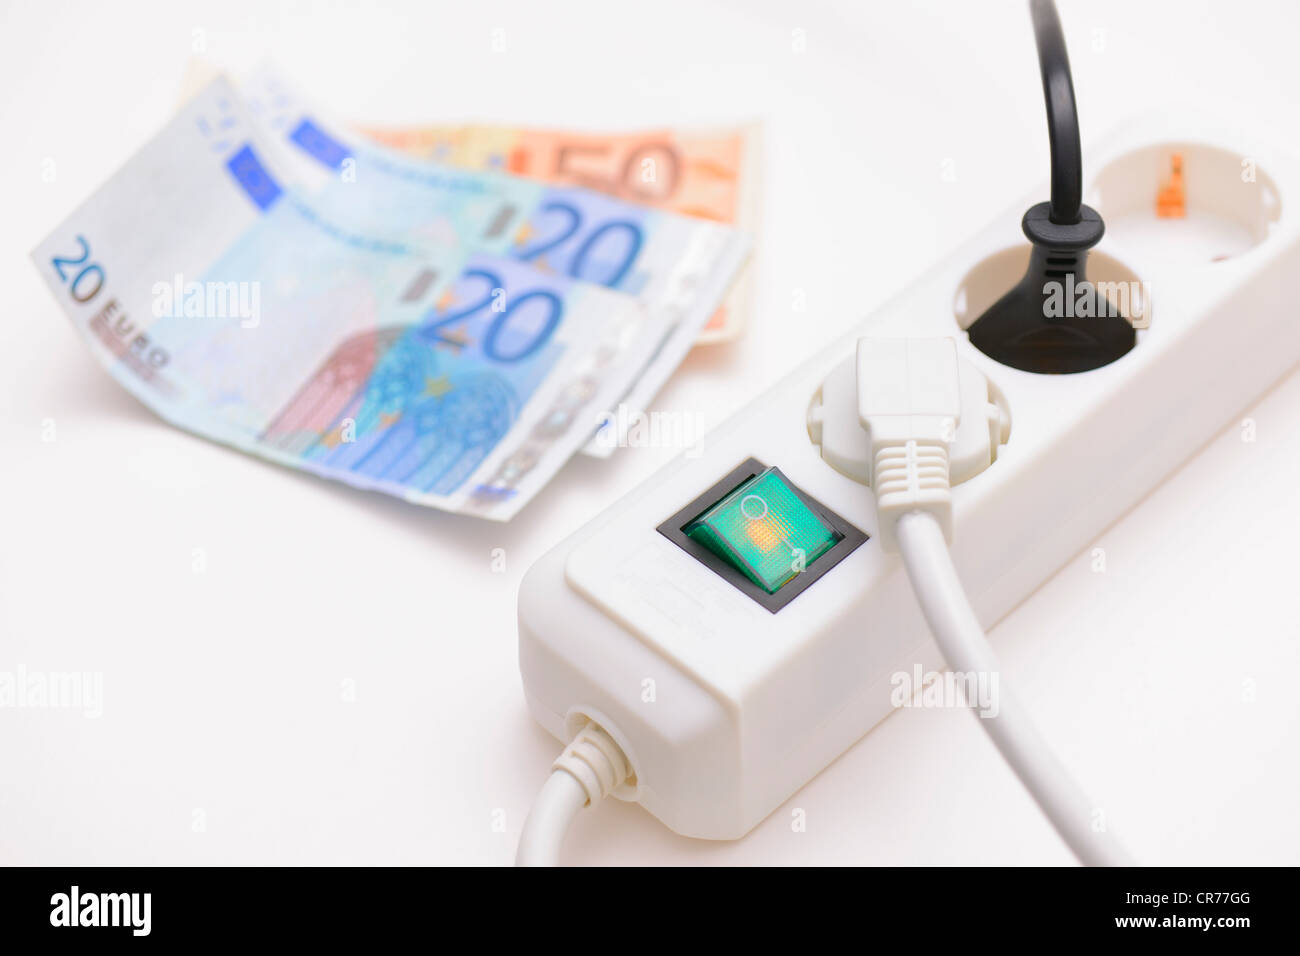 Switchable Multiple Socket Outlet With Euro Banknotes Stock Photo